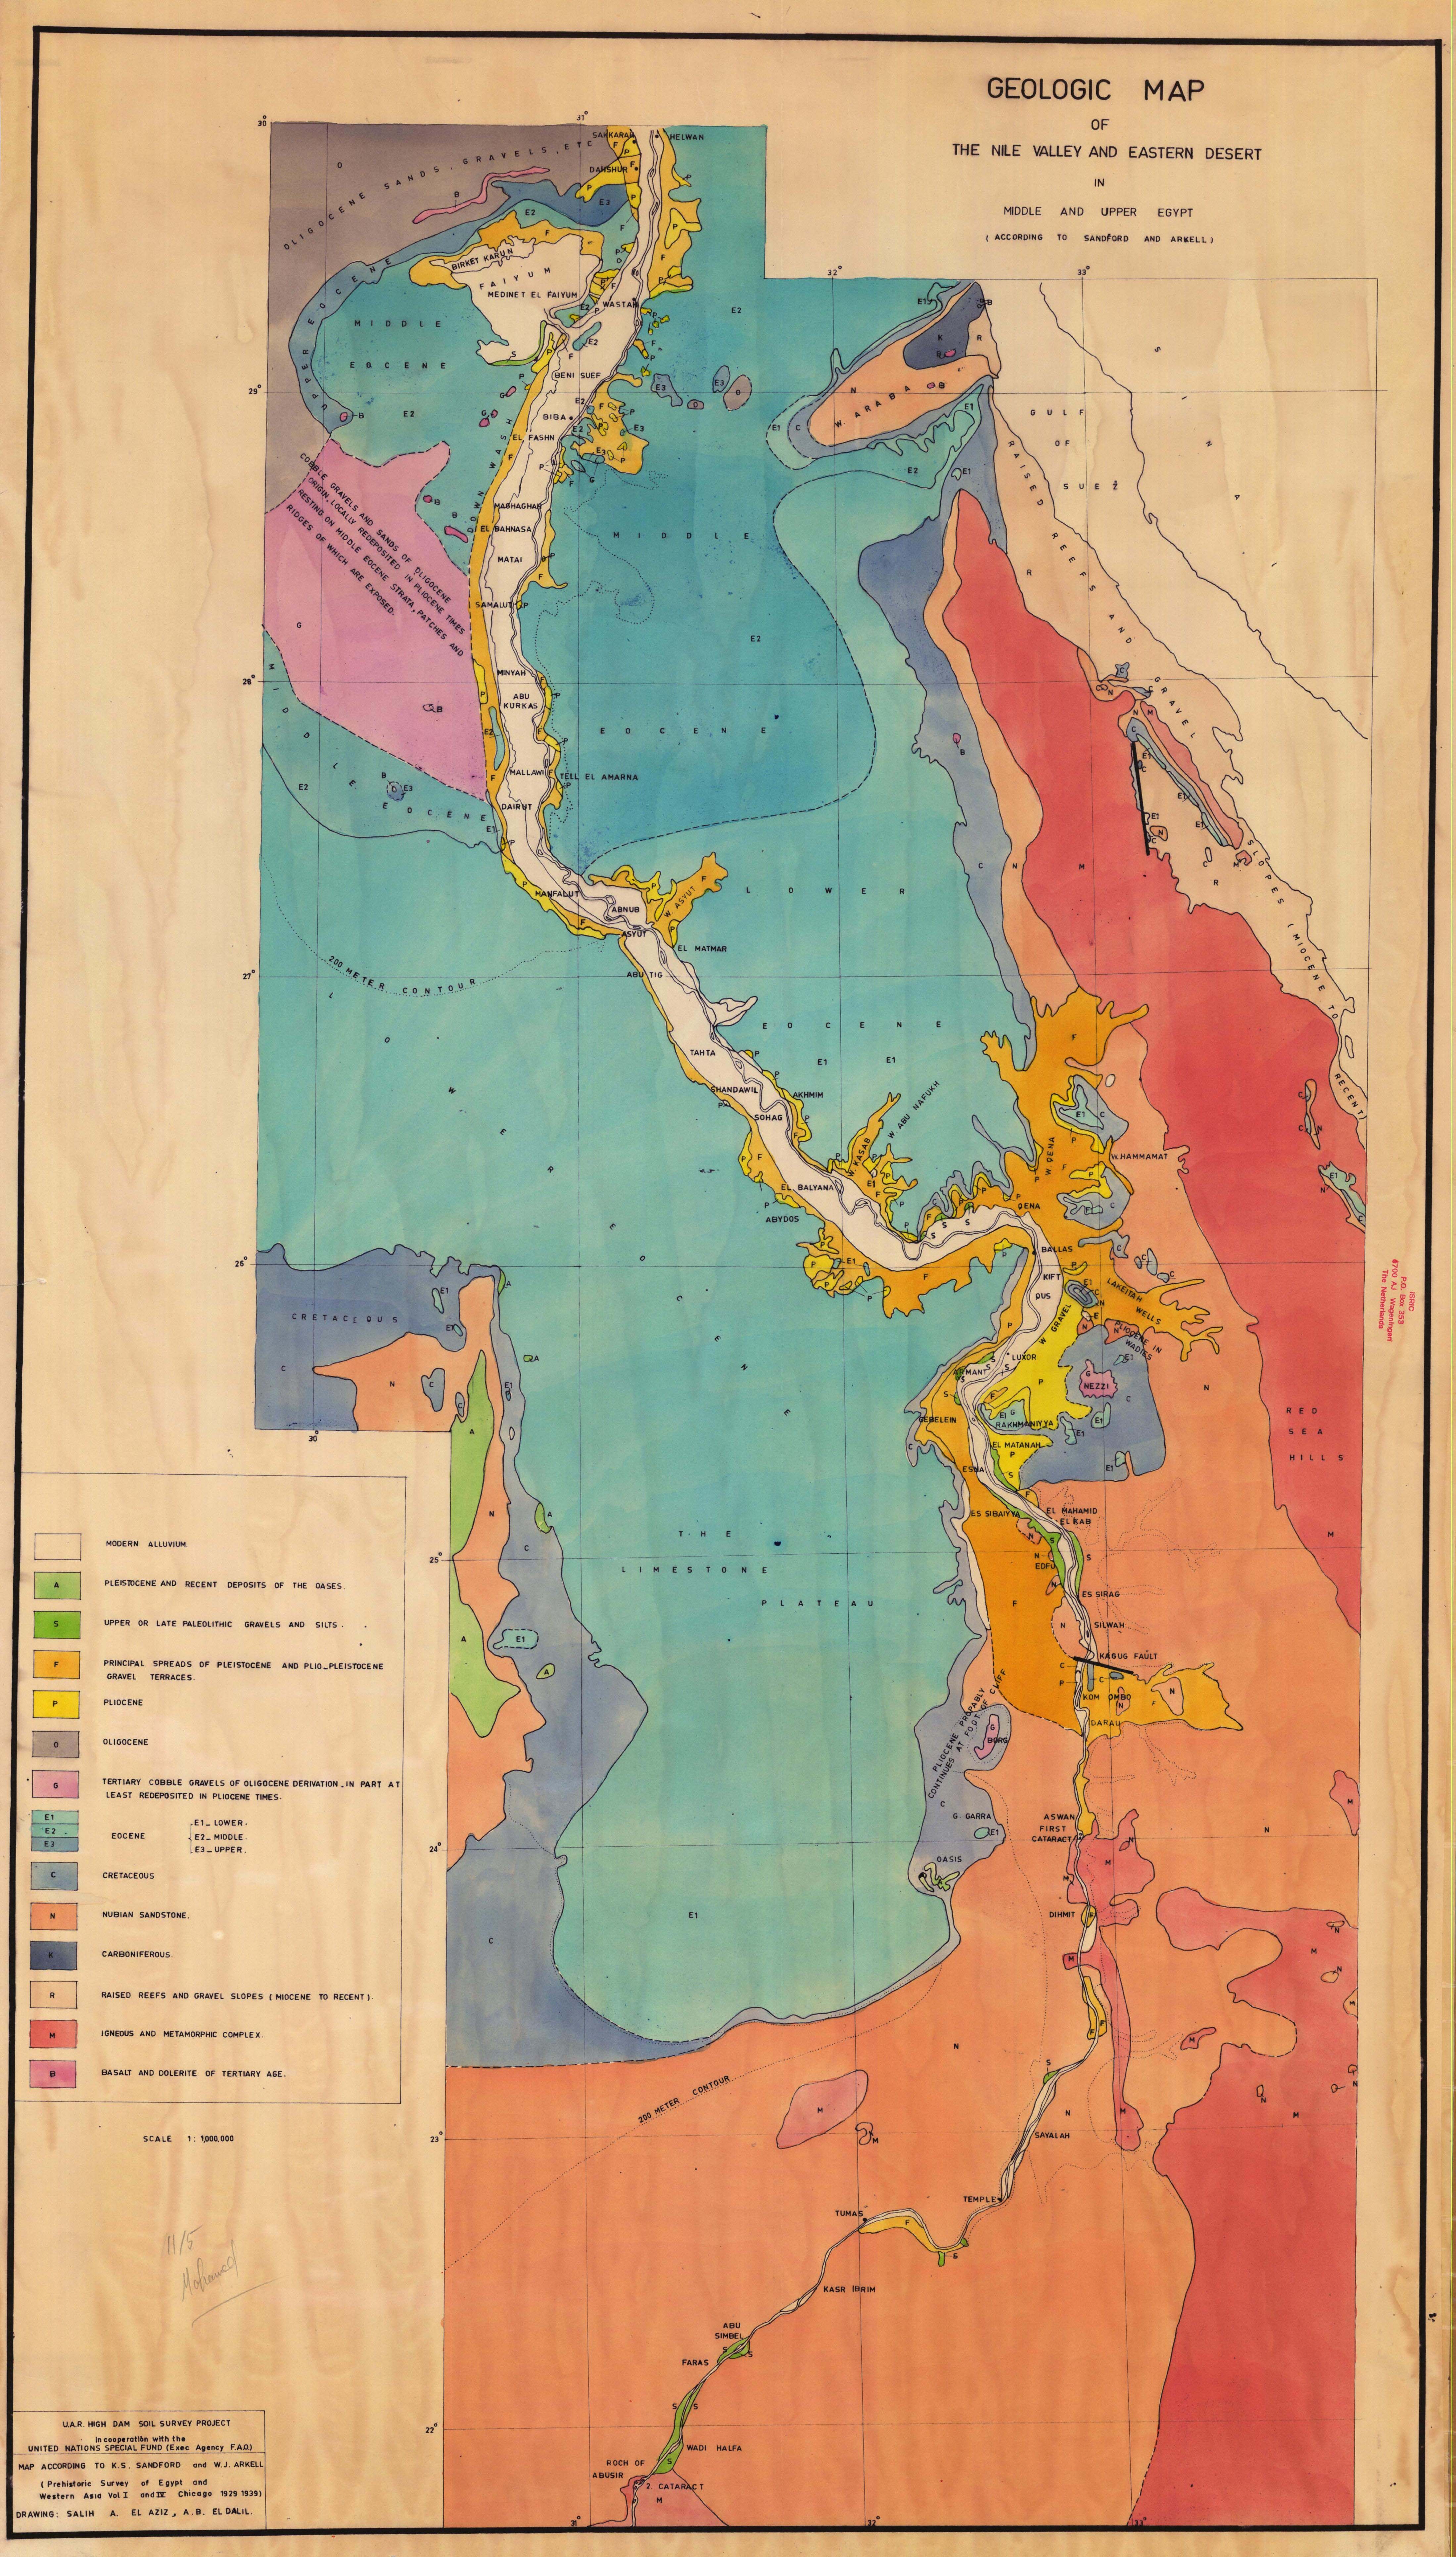 Geologic Map Of The Nile Valley And Eastern Desert In